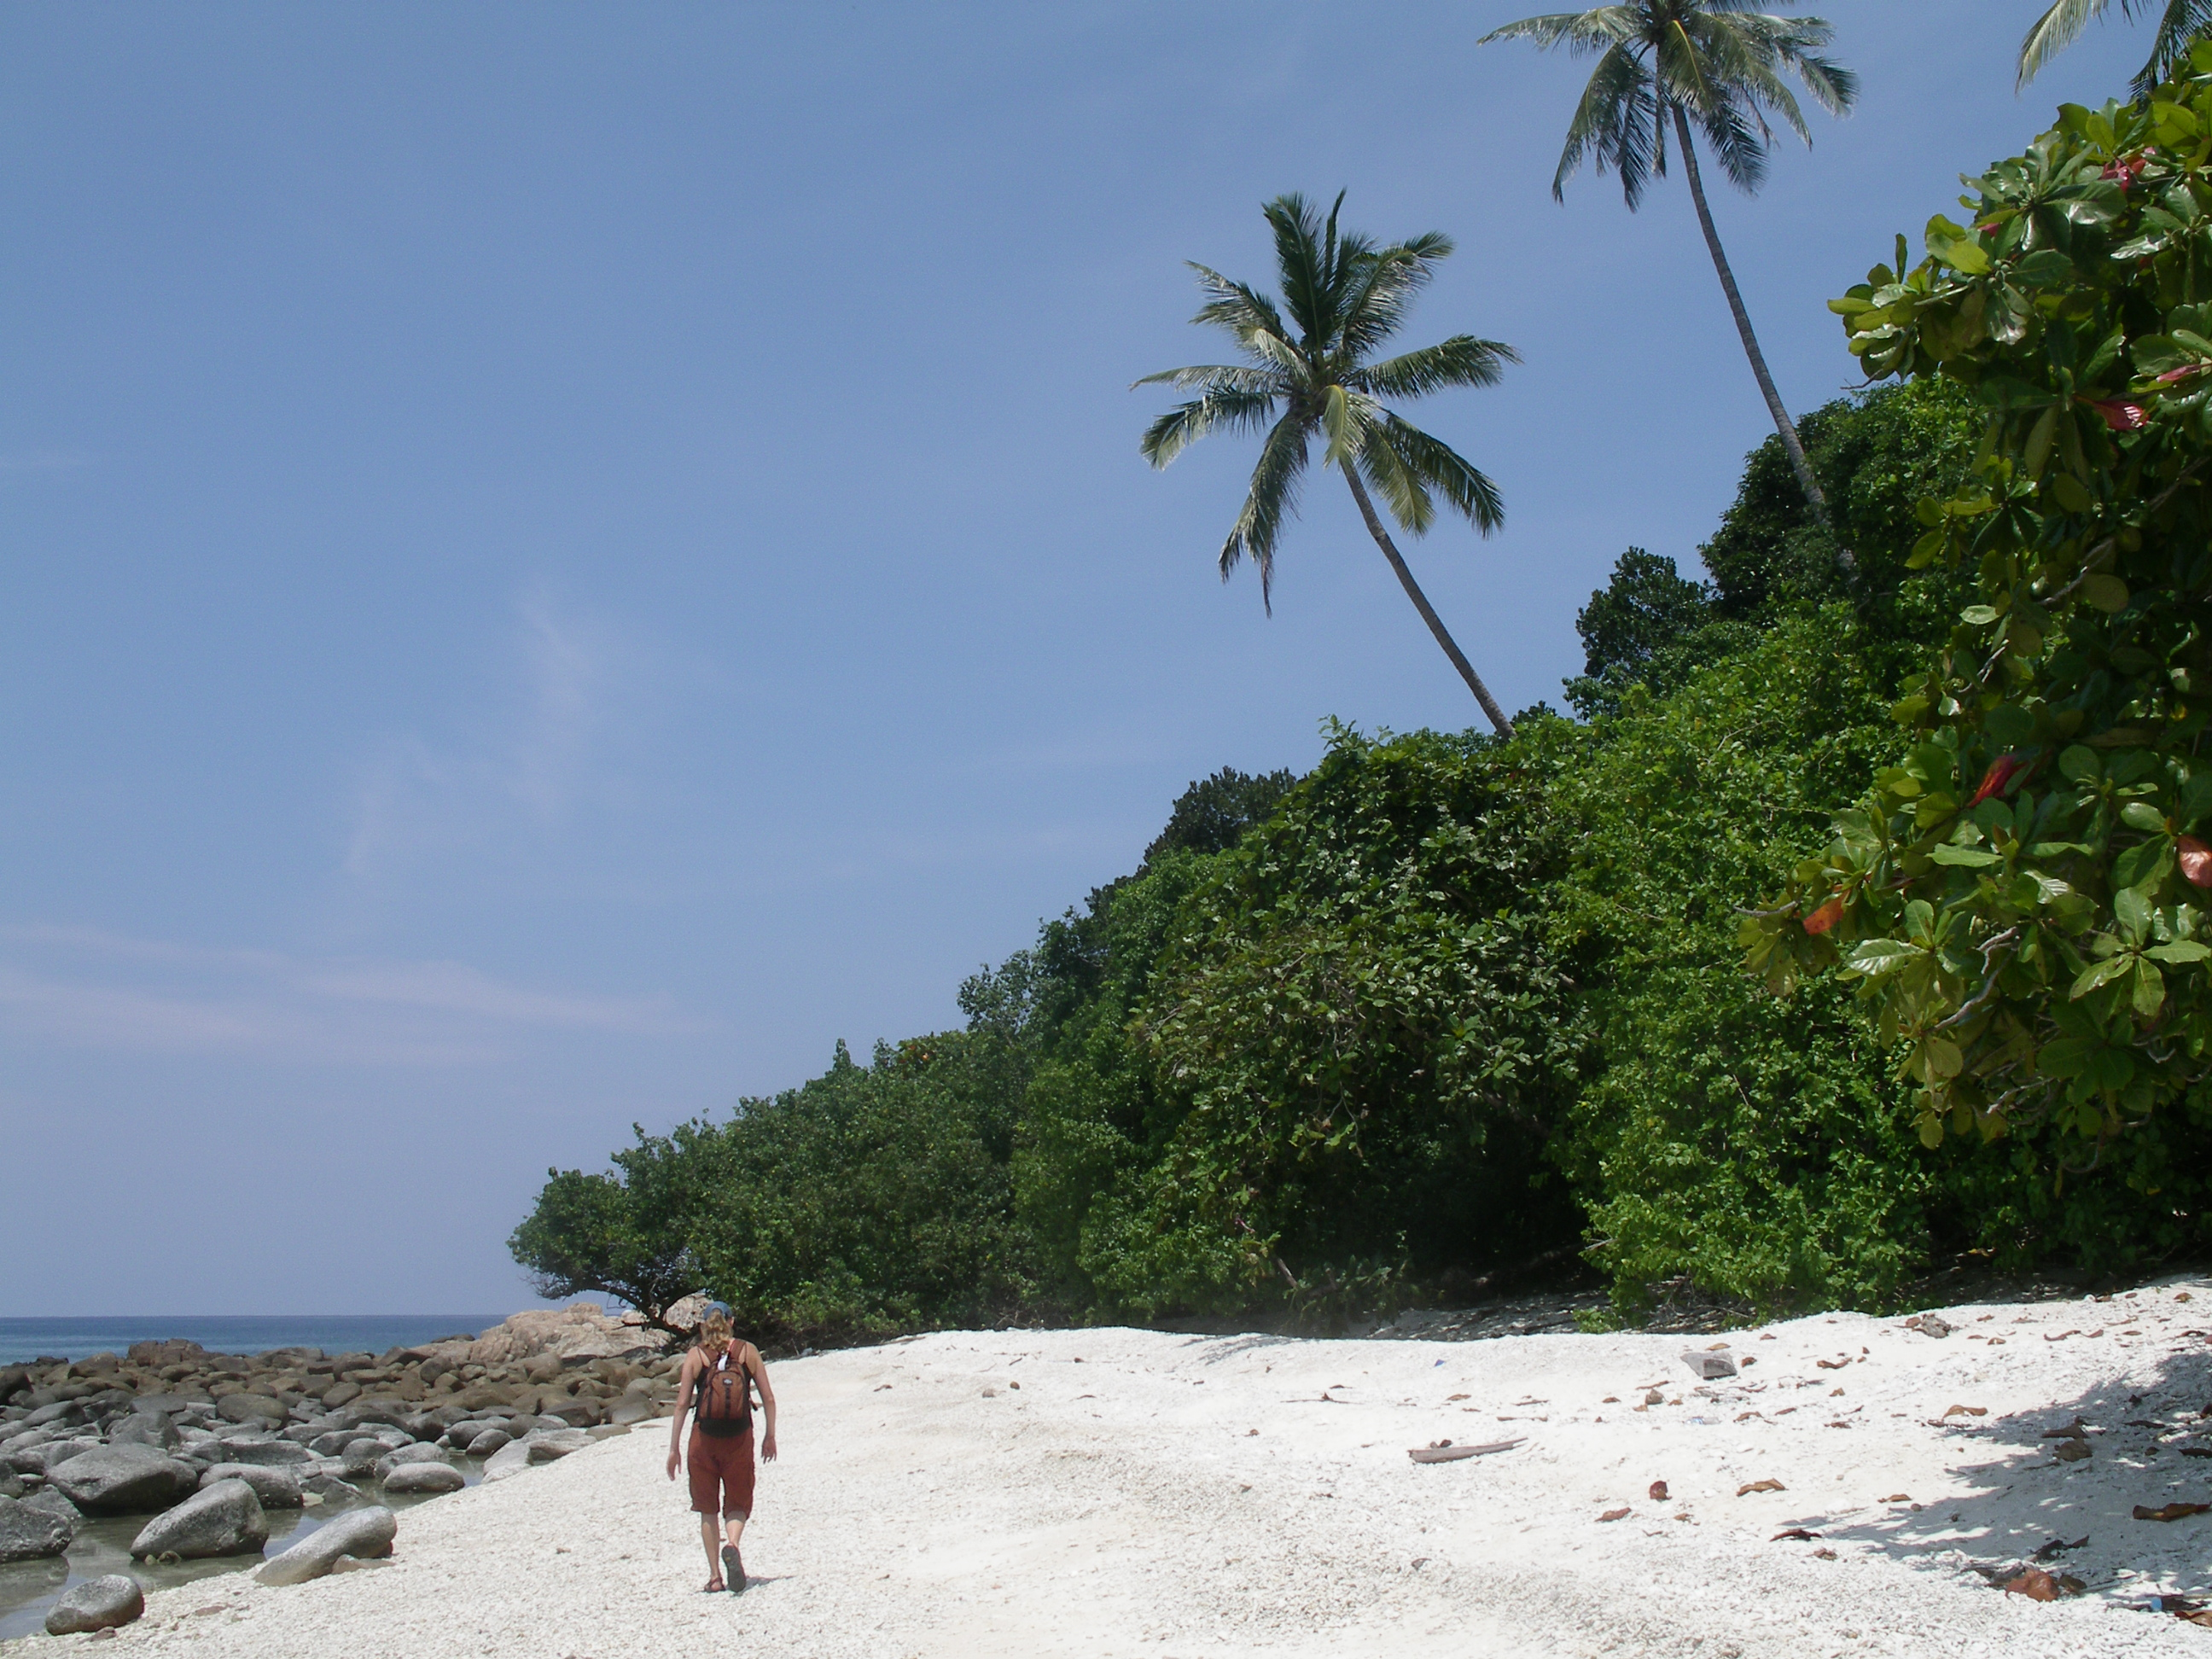 Travels in Malaysia The Picturesque Beach on Pulau Perhentian Kecil